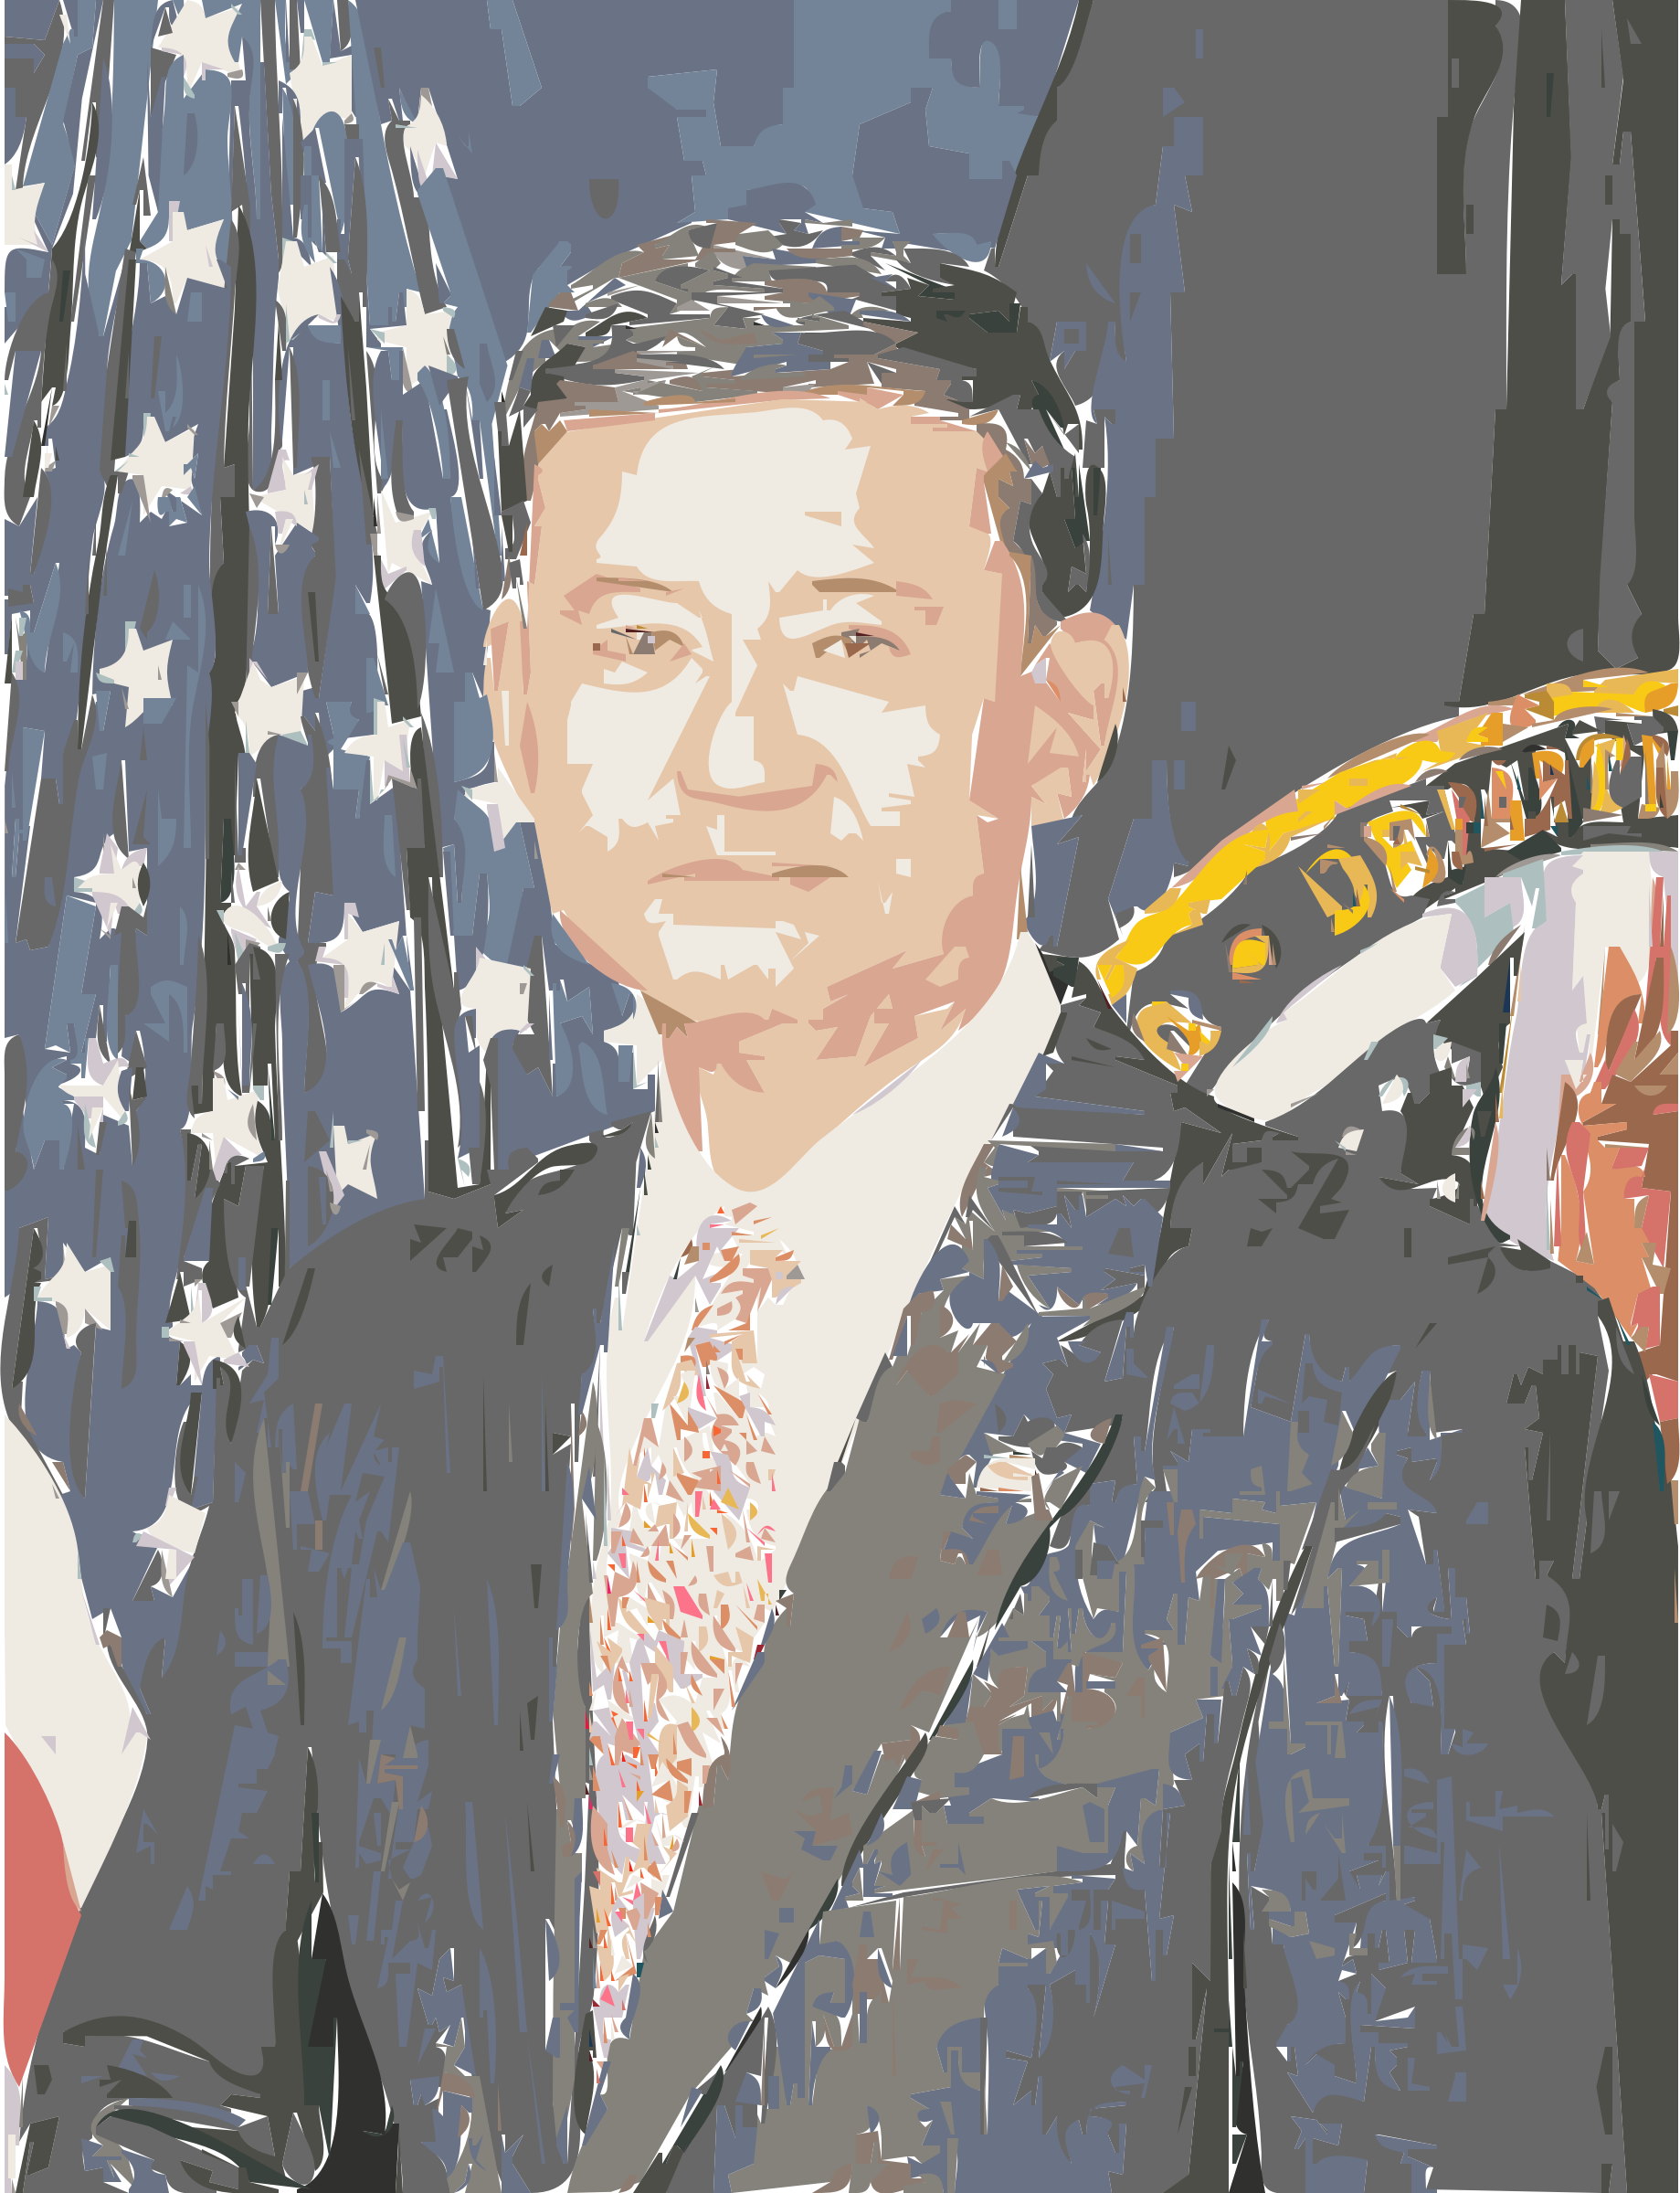 Eric Shinseki official Veterans Affairs Portrait Colorized by wanglizhong